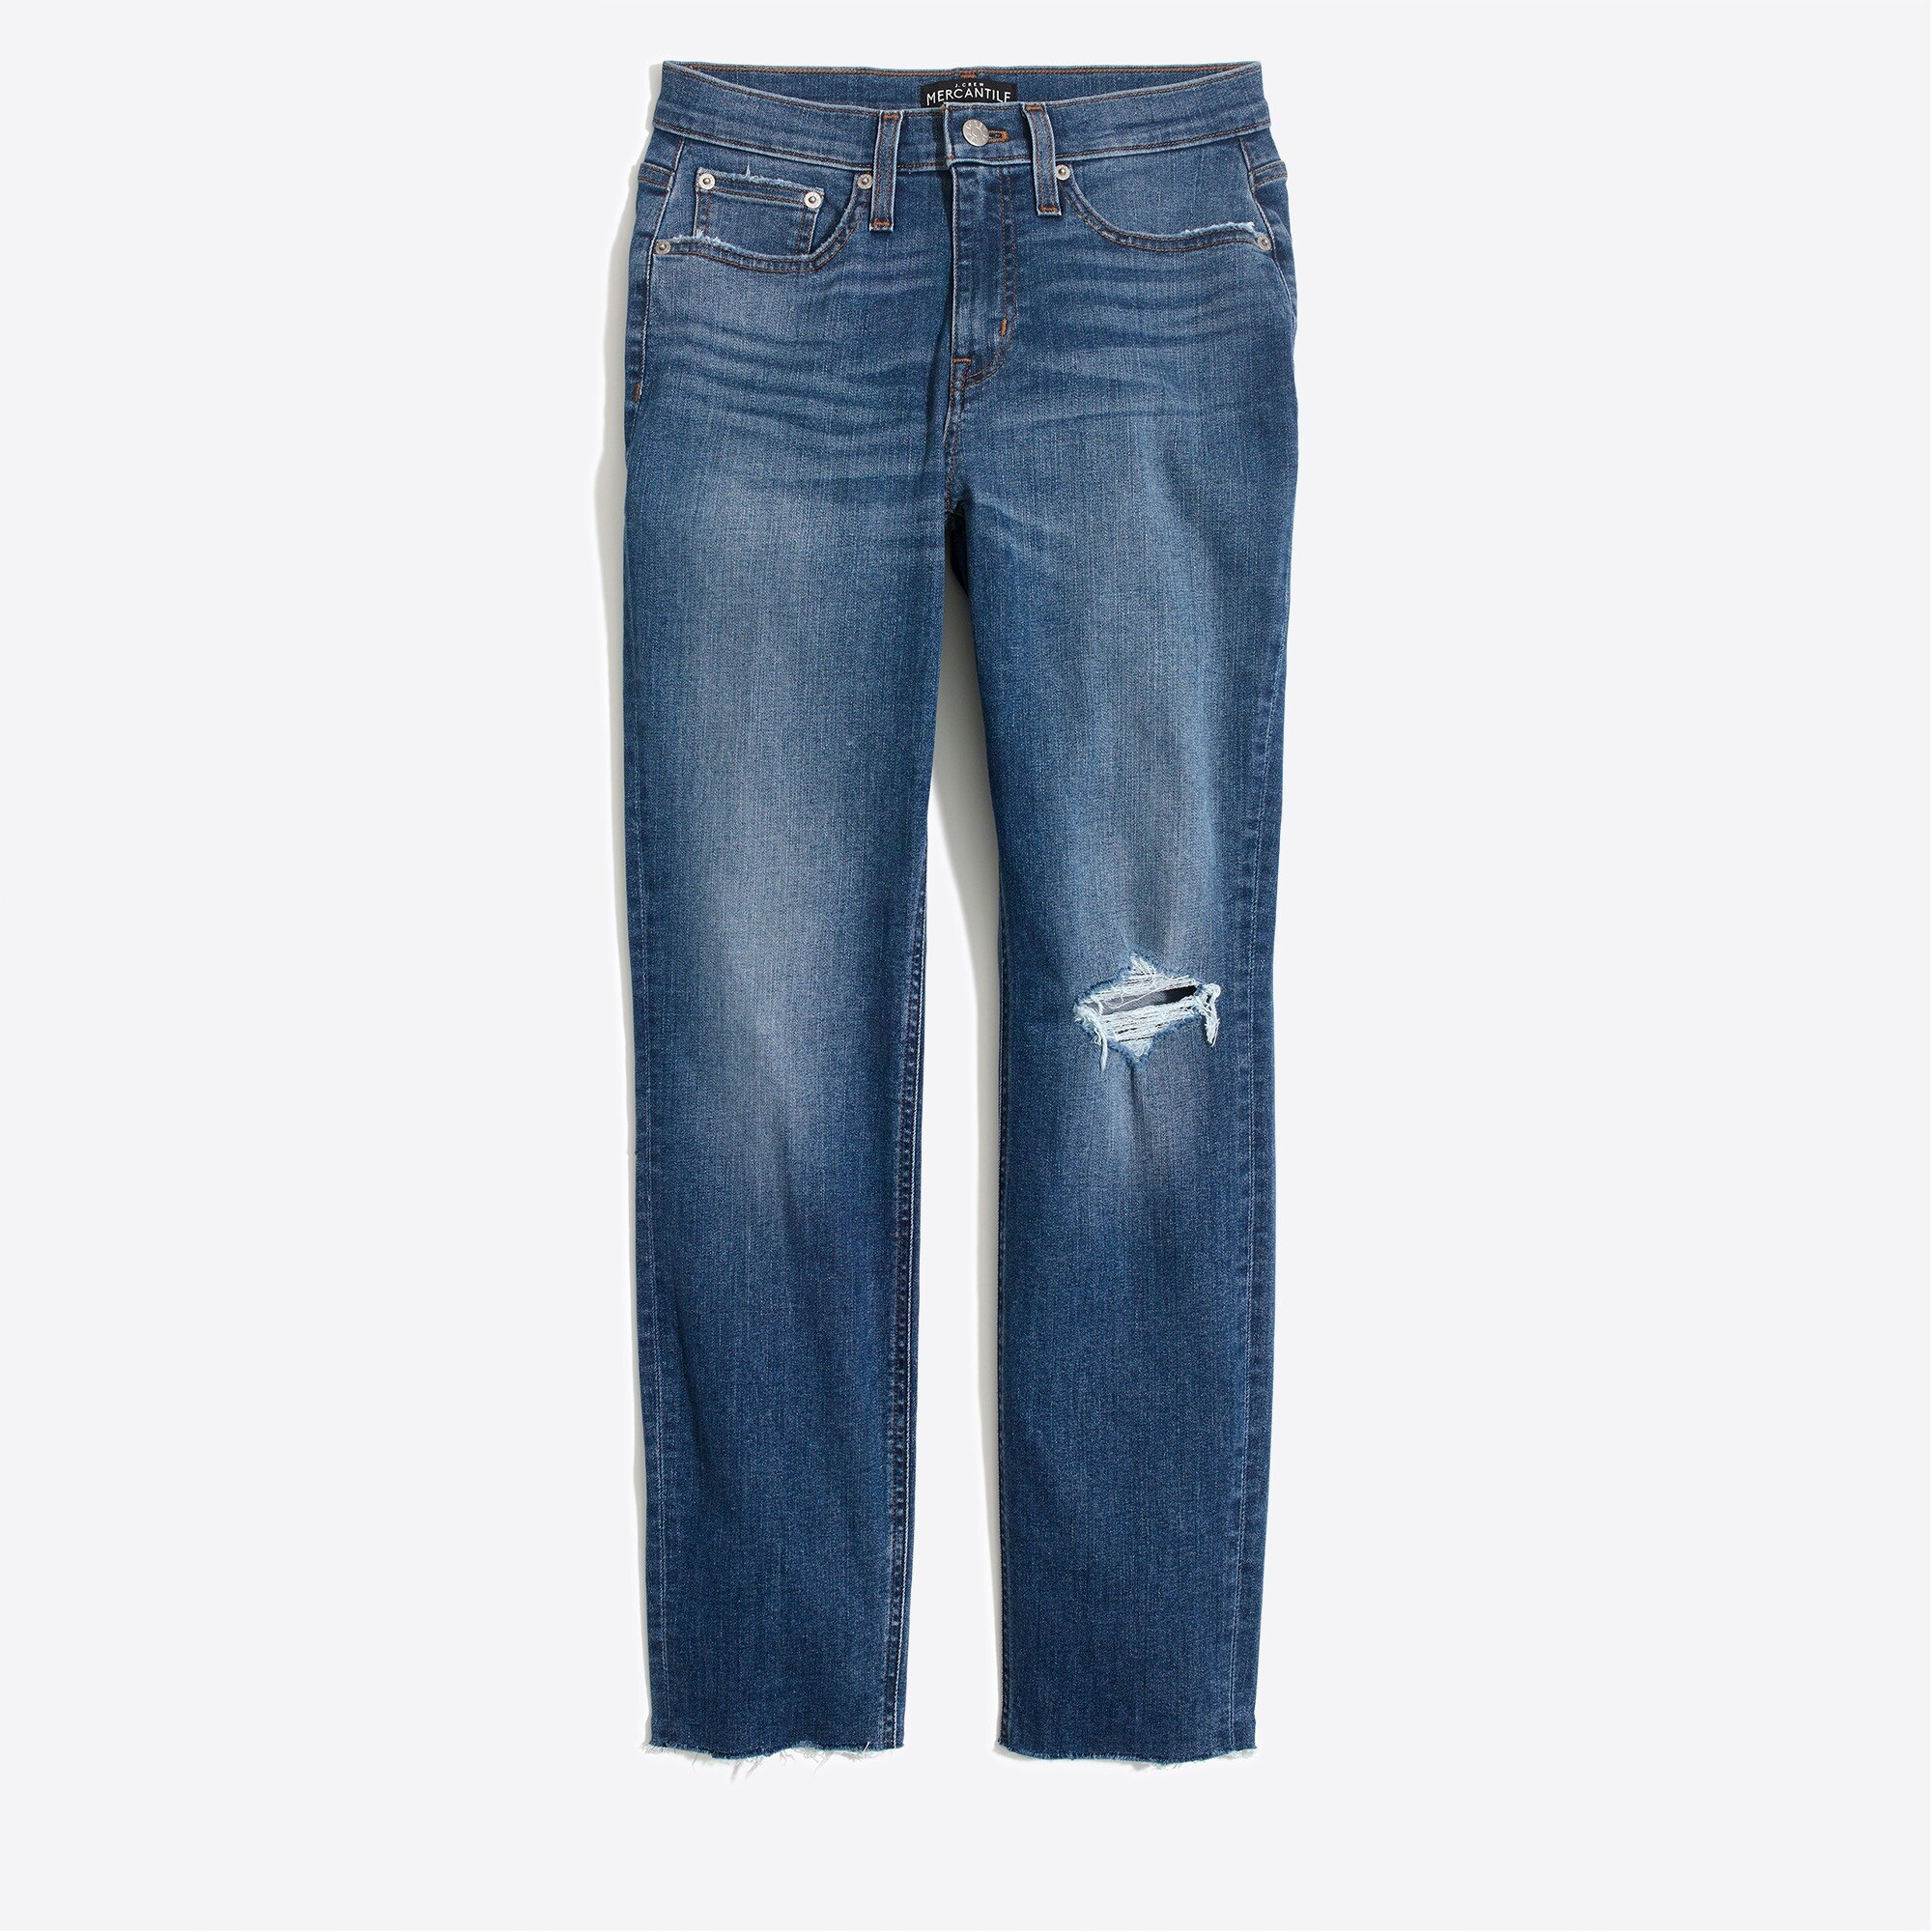 J.Crew Mercantile Slim boyfriend jean in Essexville wash